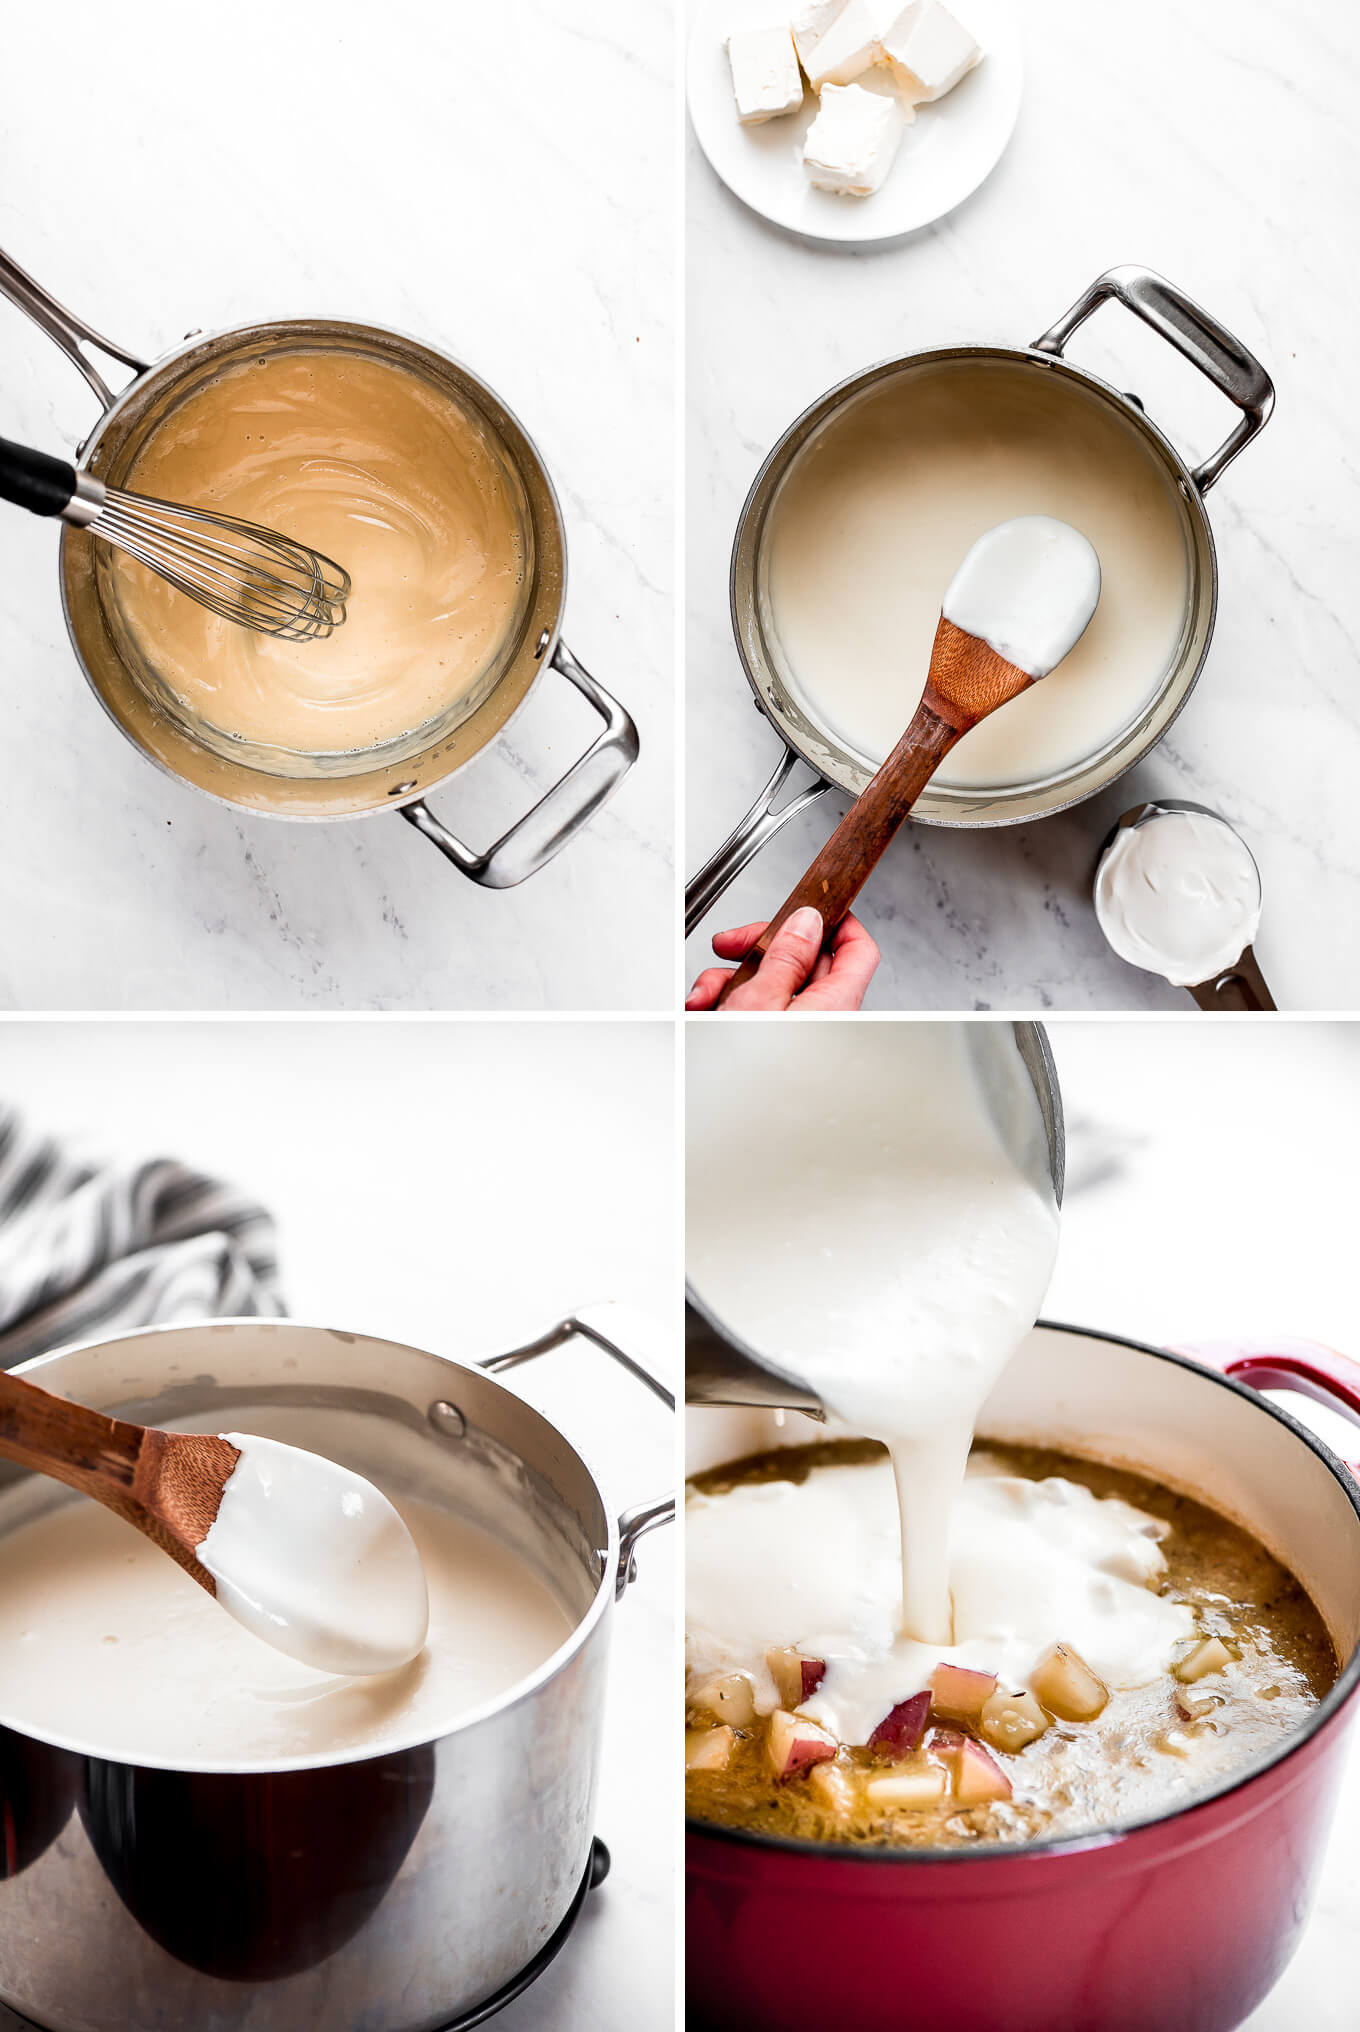 Process shots of making a thick and creamy béchamel sauce and adding it to a pot of potatoes and broth.